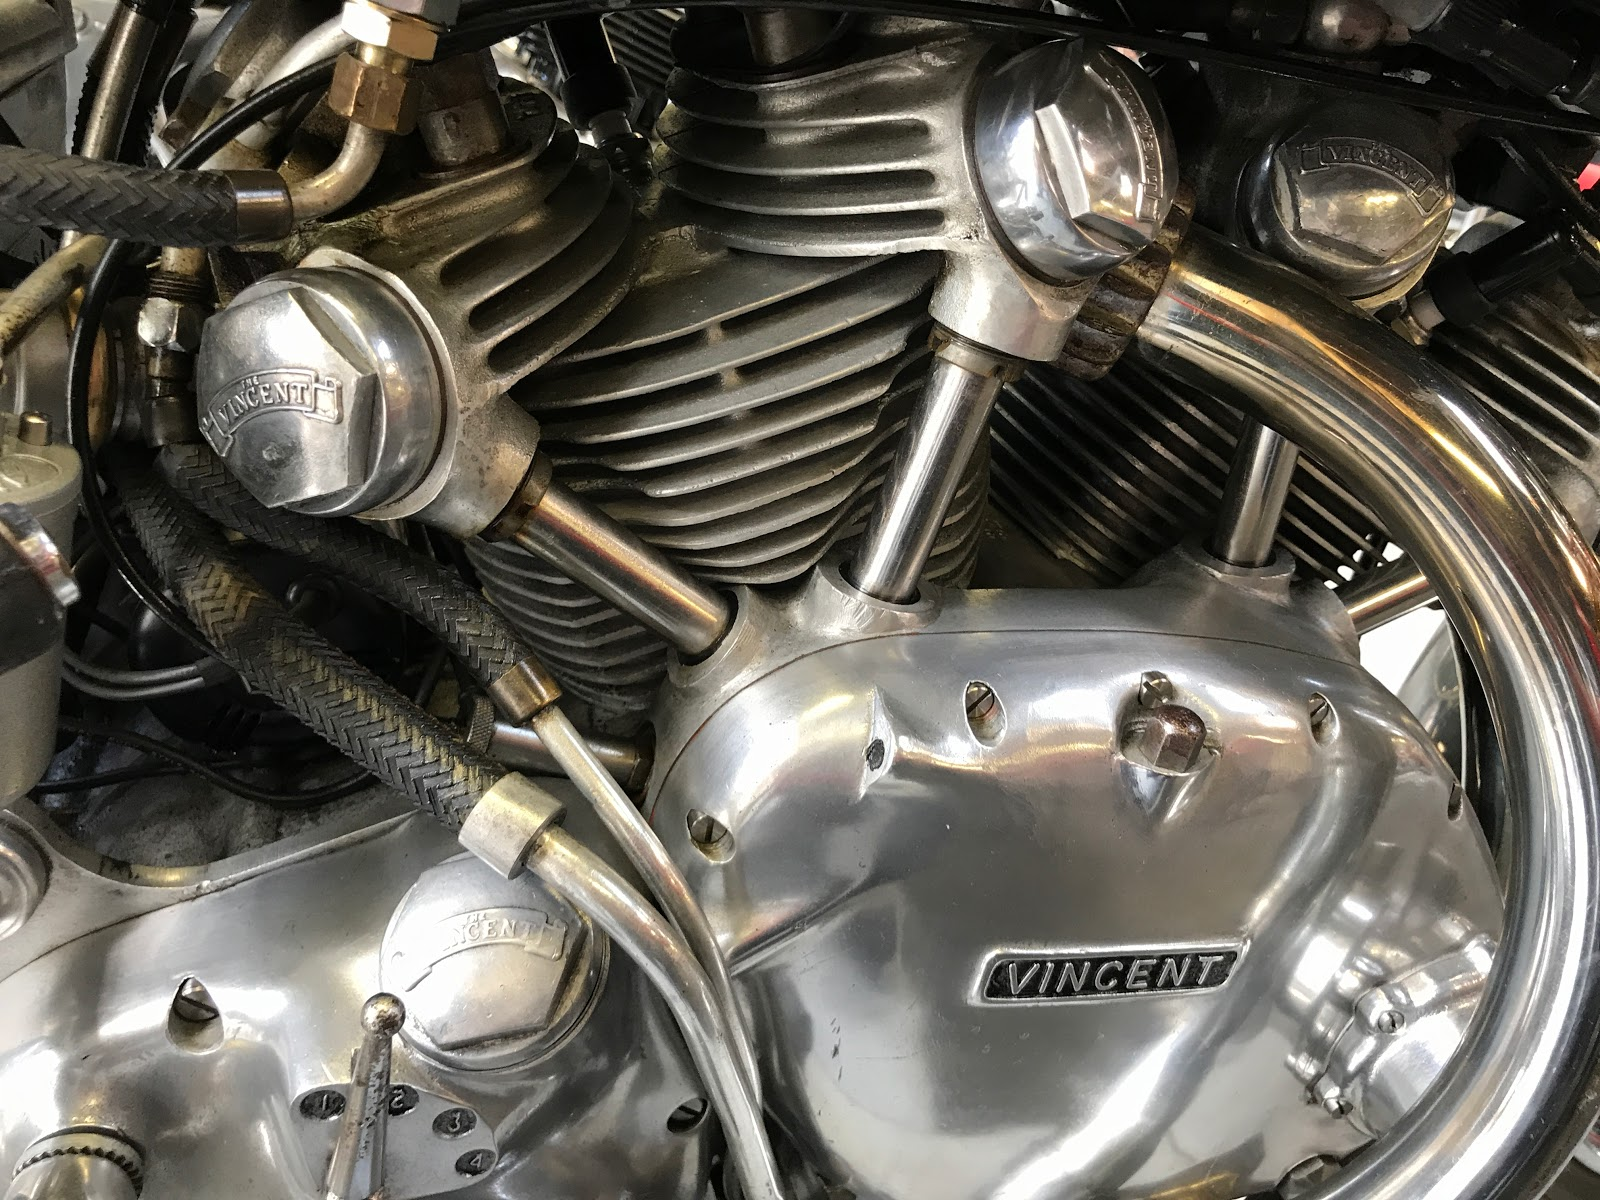 NYDUCATI presents Billy Joel's 20th Century Cycles Vincent Rapide Engine